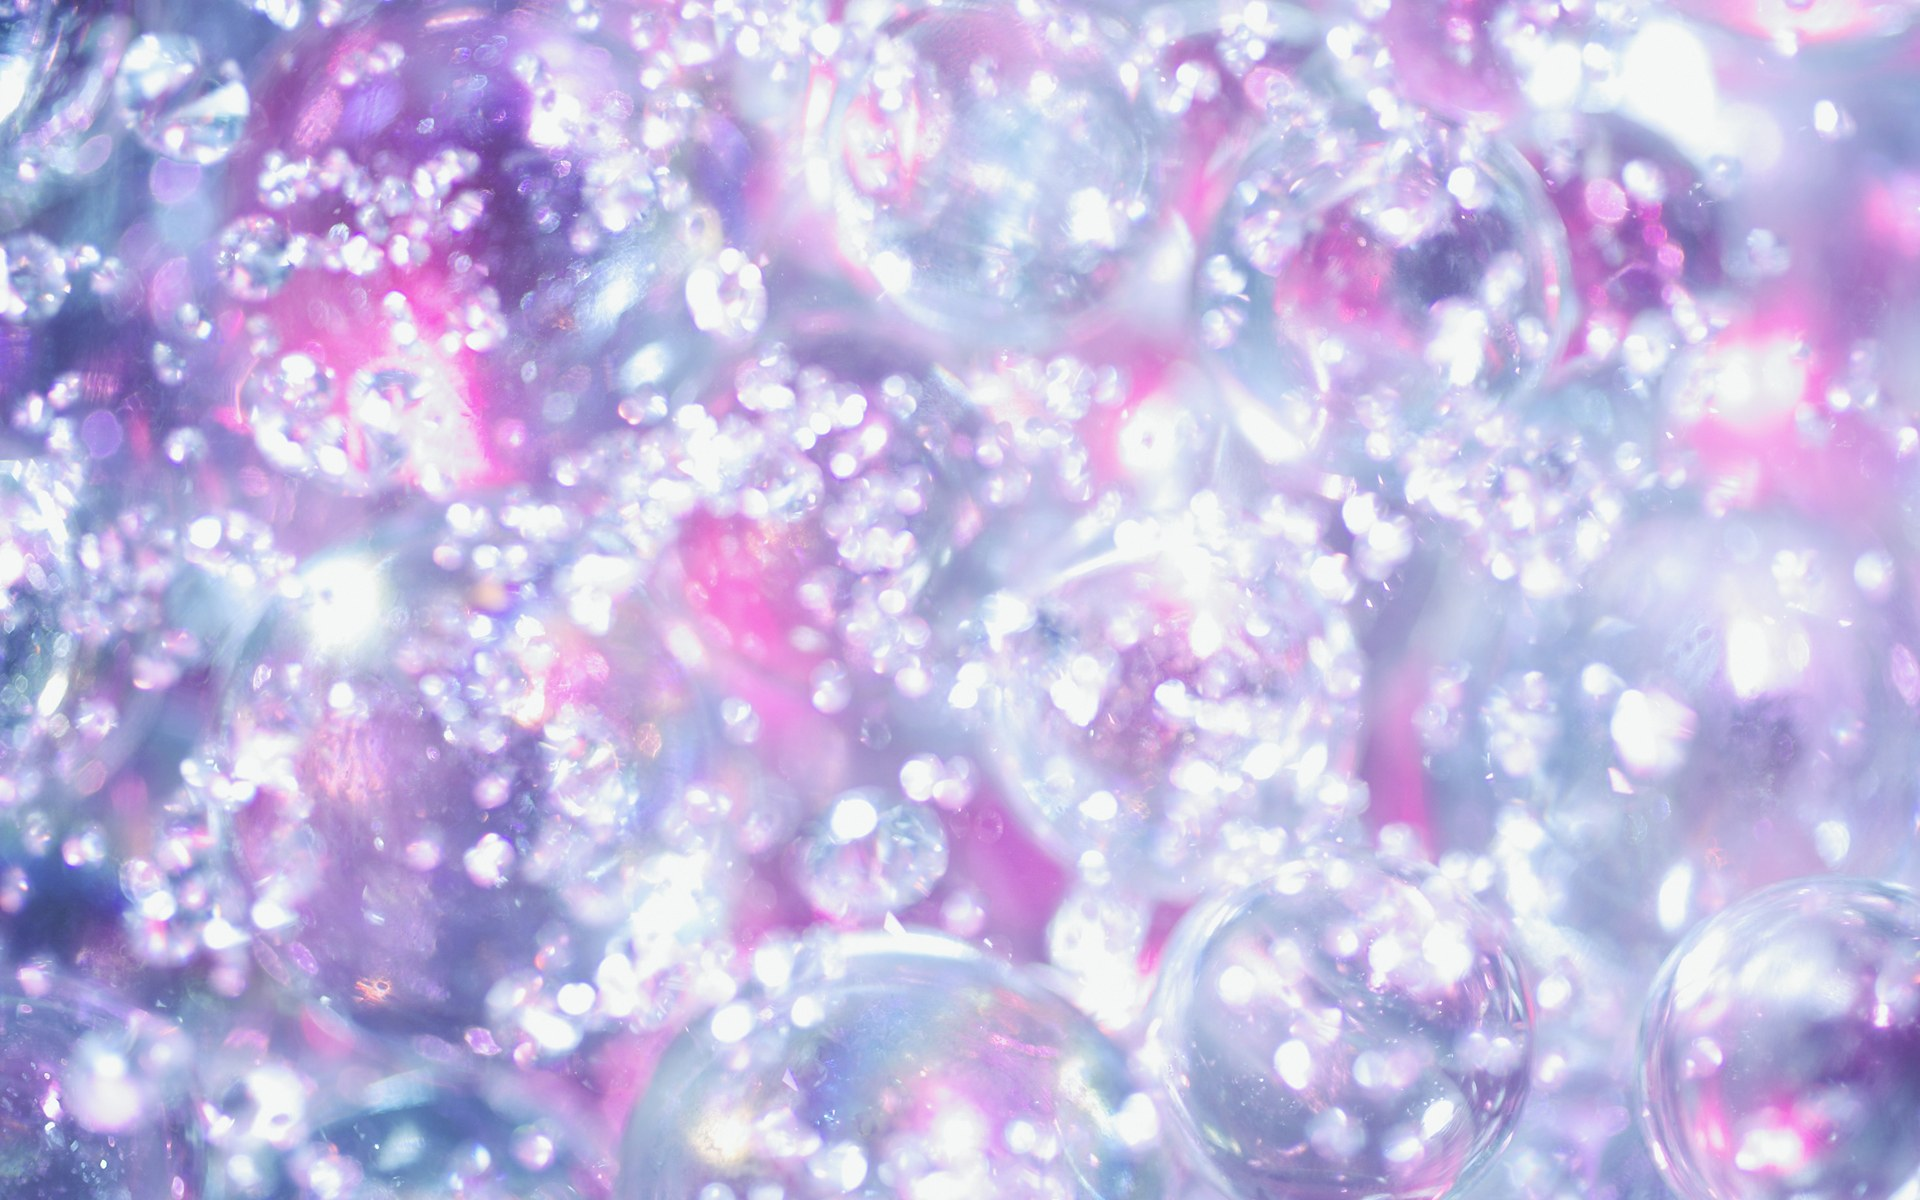 Purple romantic background